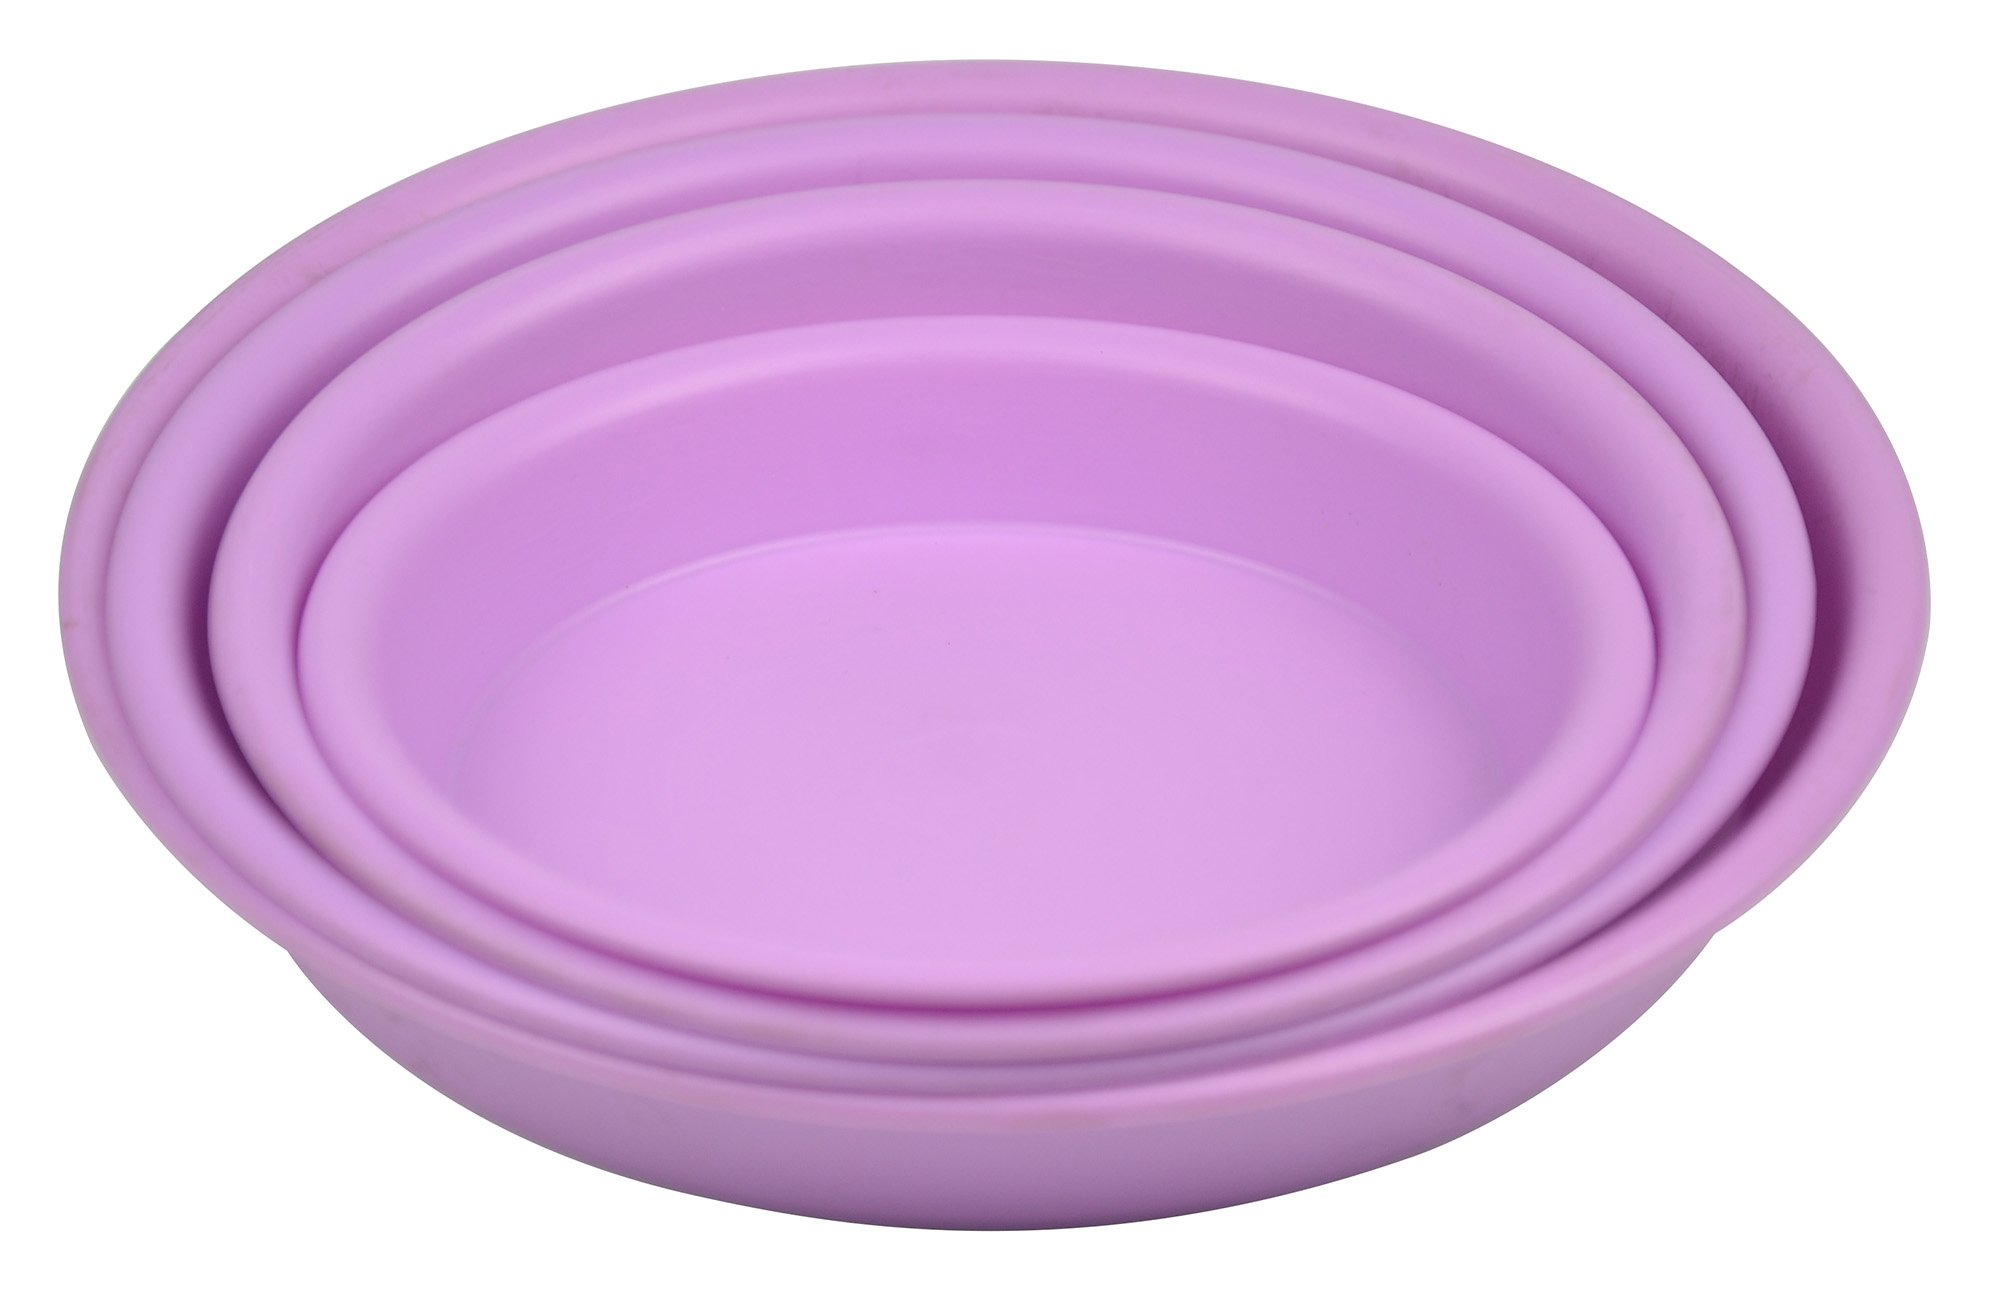 5.3'' Round Plant Saucer Planter Tray Pat Pallet for Flowerpot,Purple,1400 Count by Zhanwang